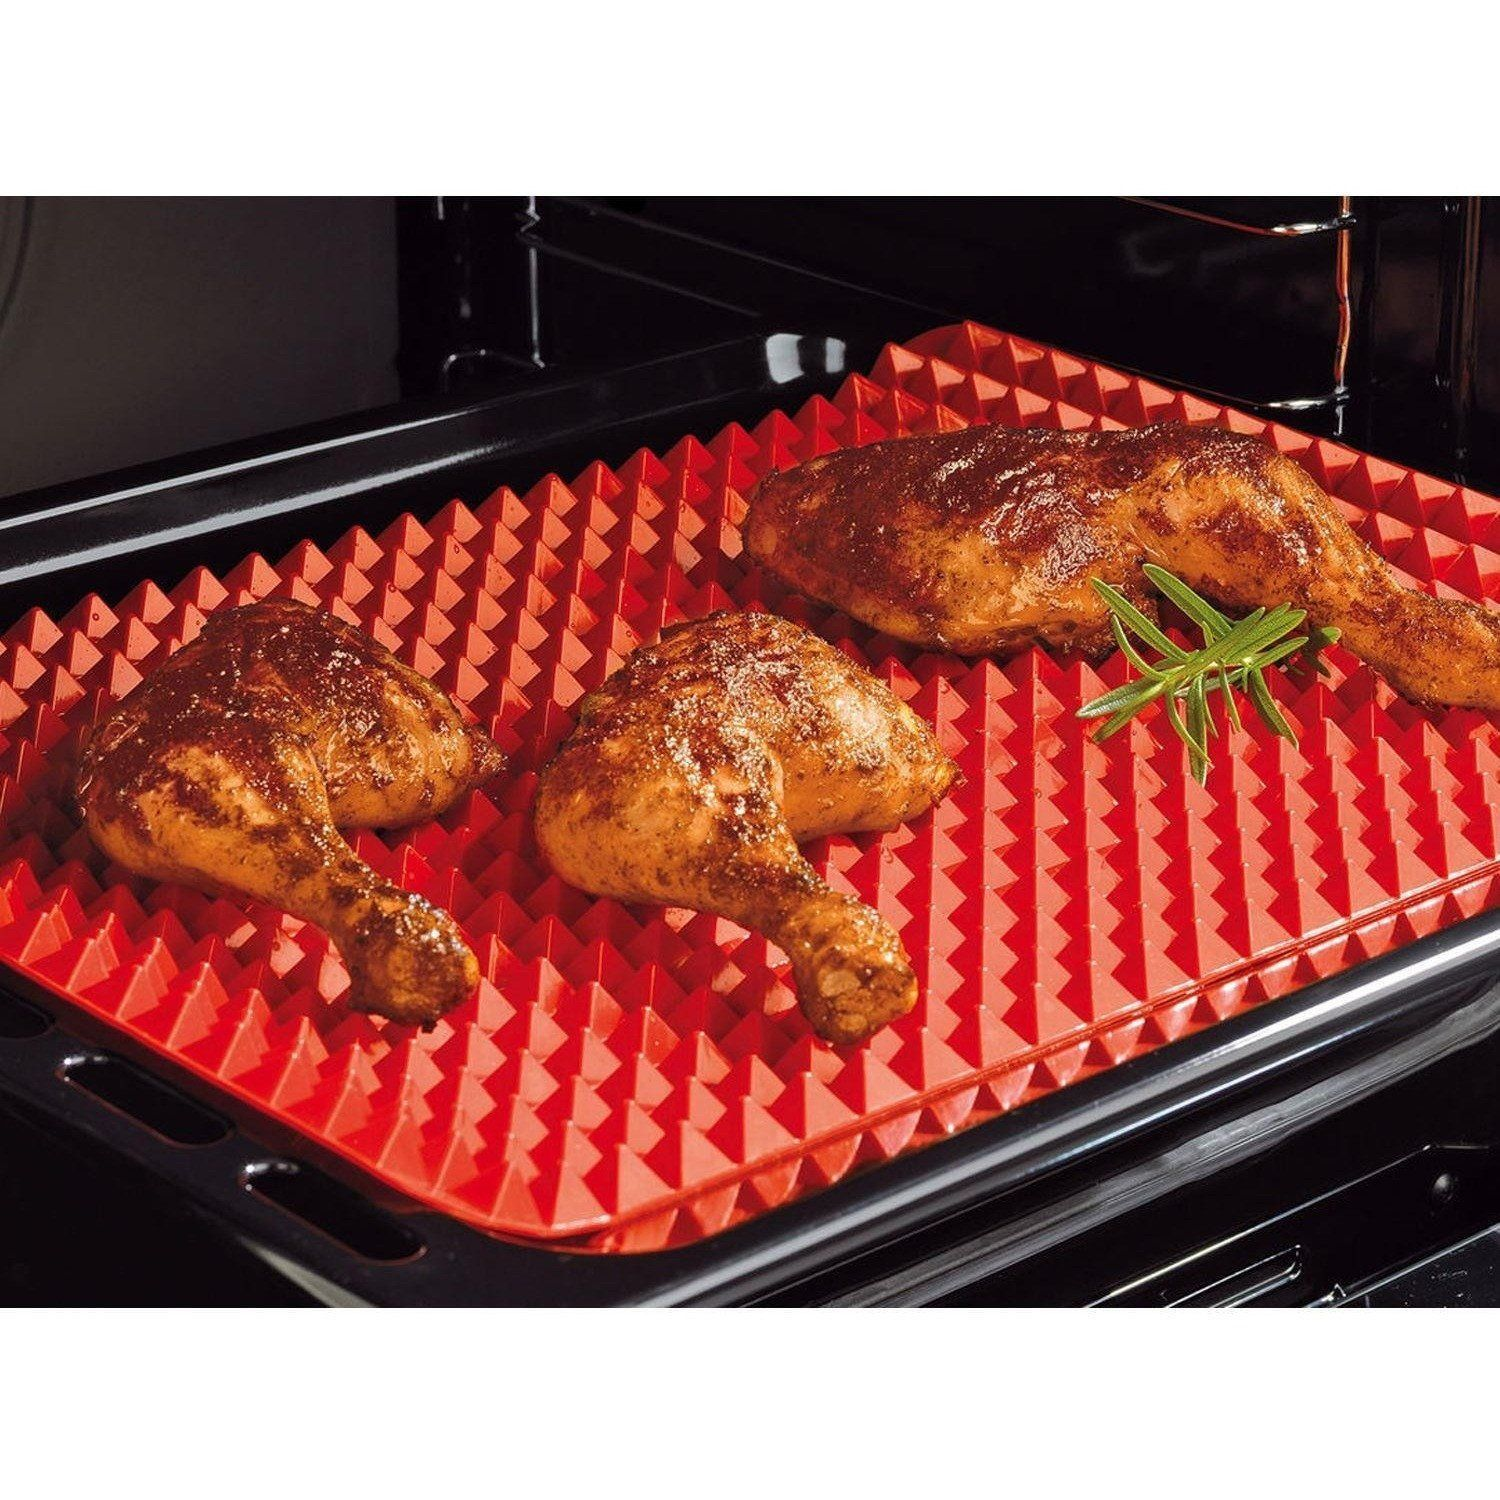 Non Stick Baking And Cooking Mat Chickenrecipeshealthybaked Cooking Cooking Mat Chicken Wing Recipes Baked